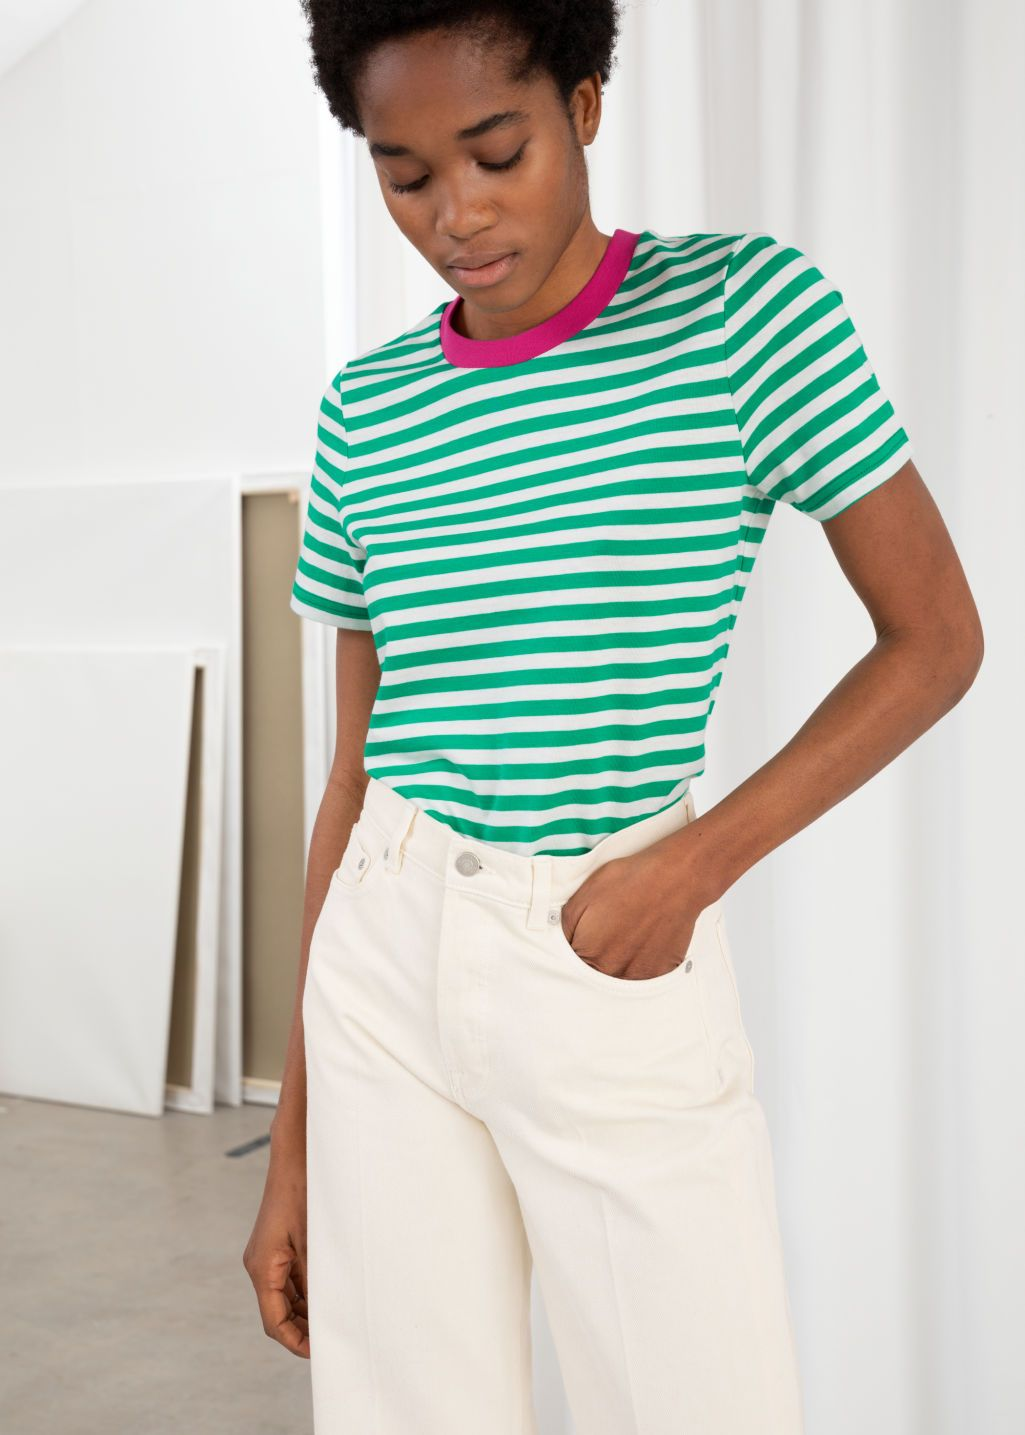 77544ef05a61e3 Striped Tee in 2019 | Spring2019 | Striped tee, Tees, Mens tops